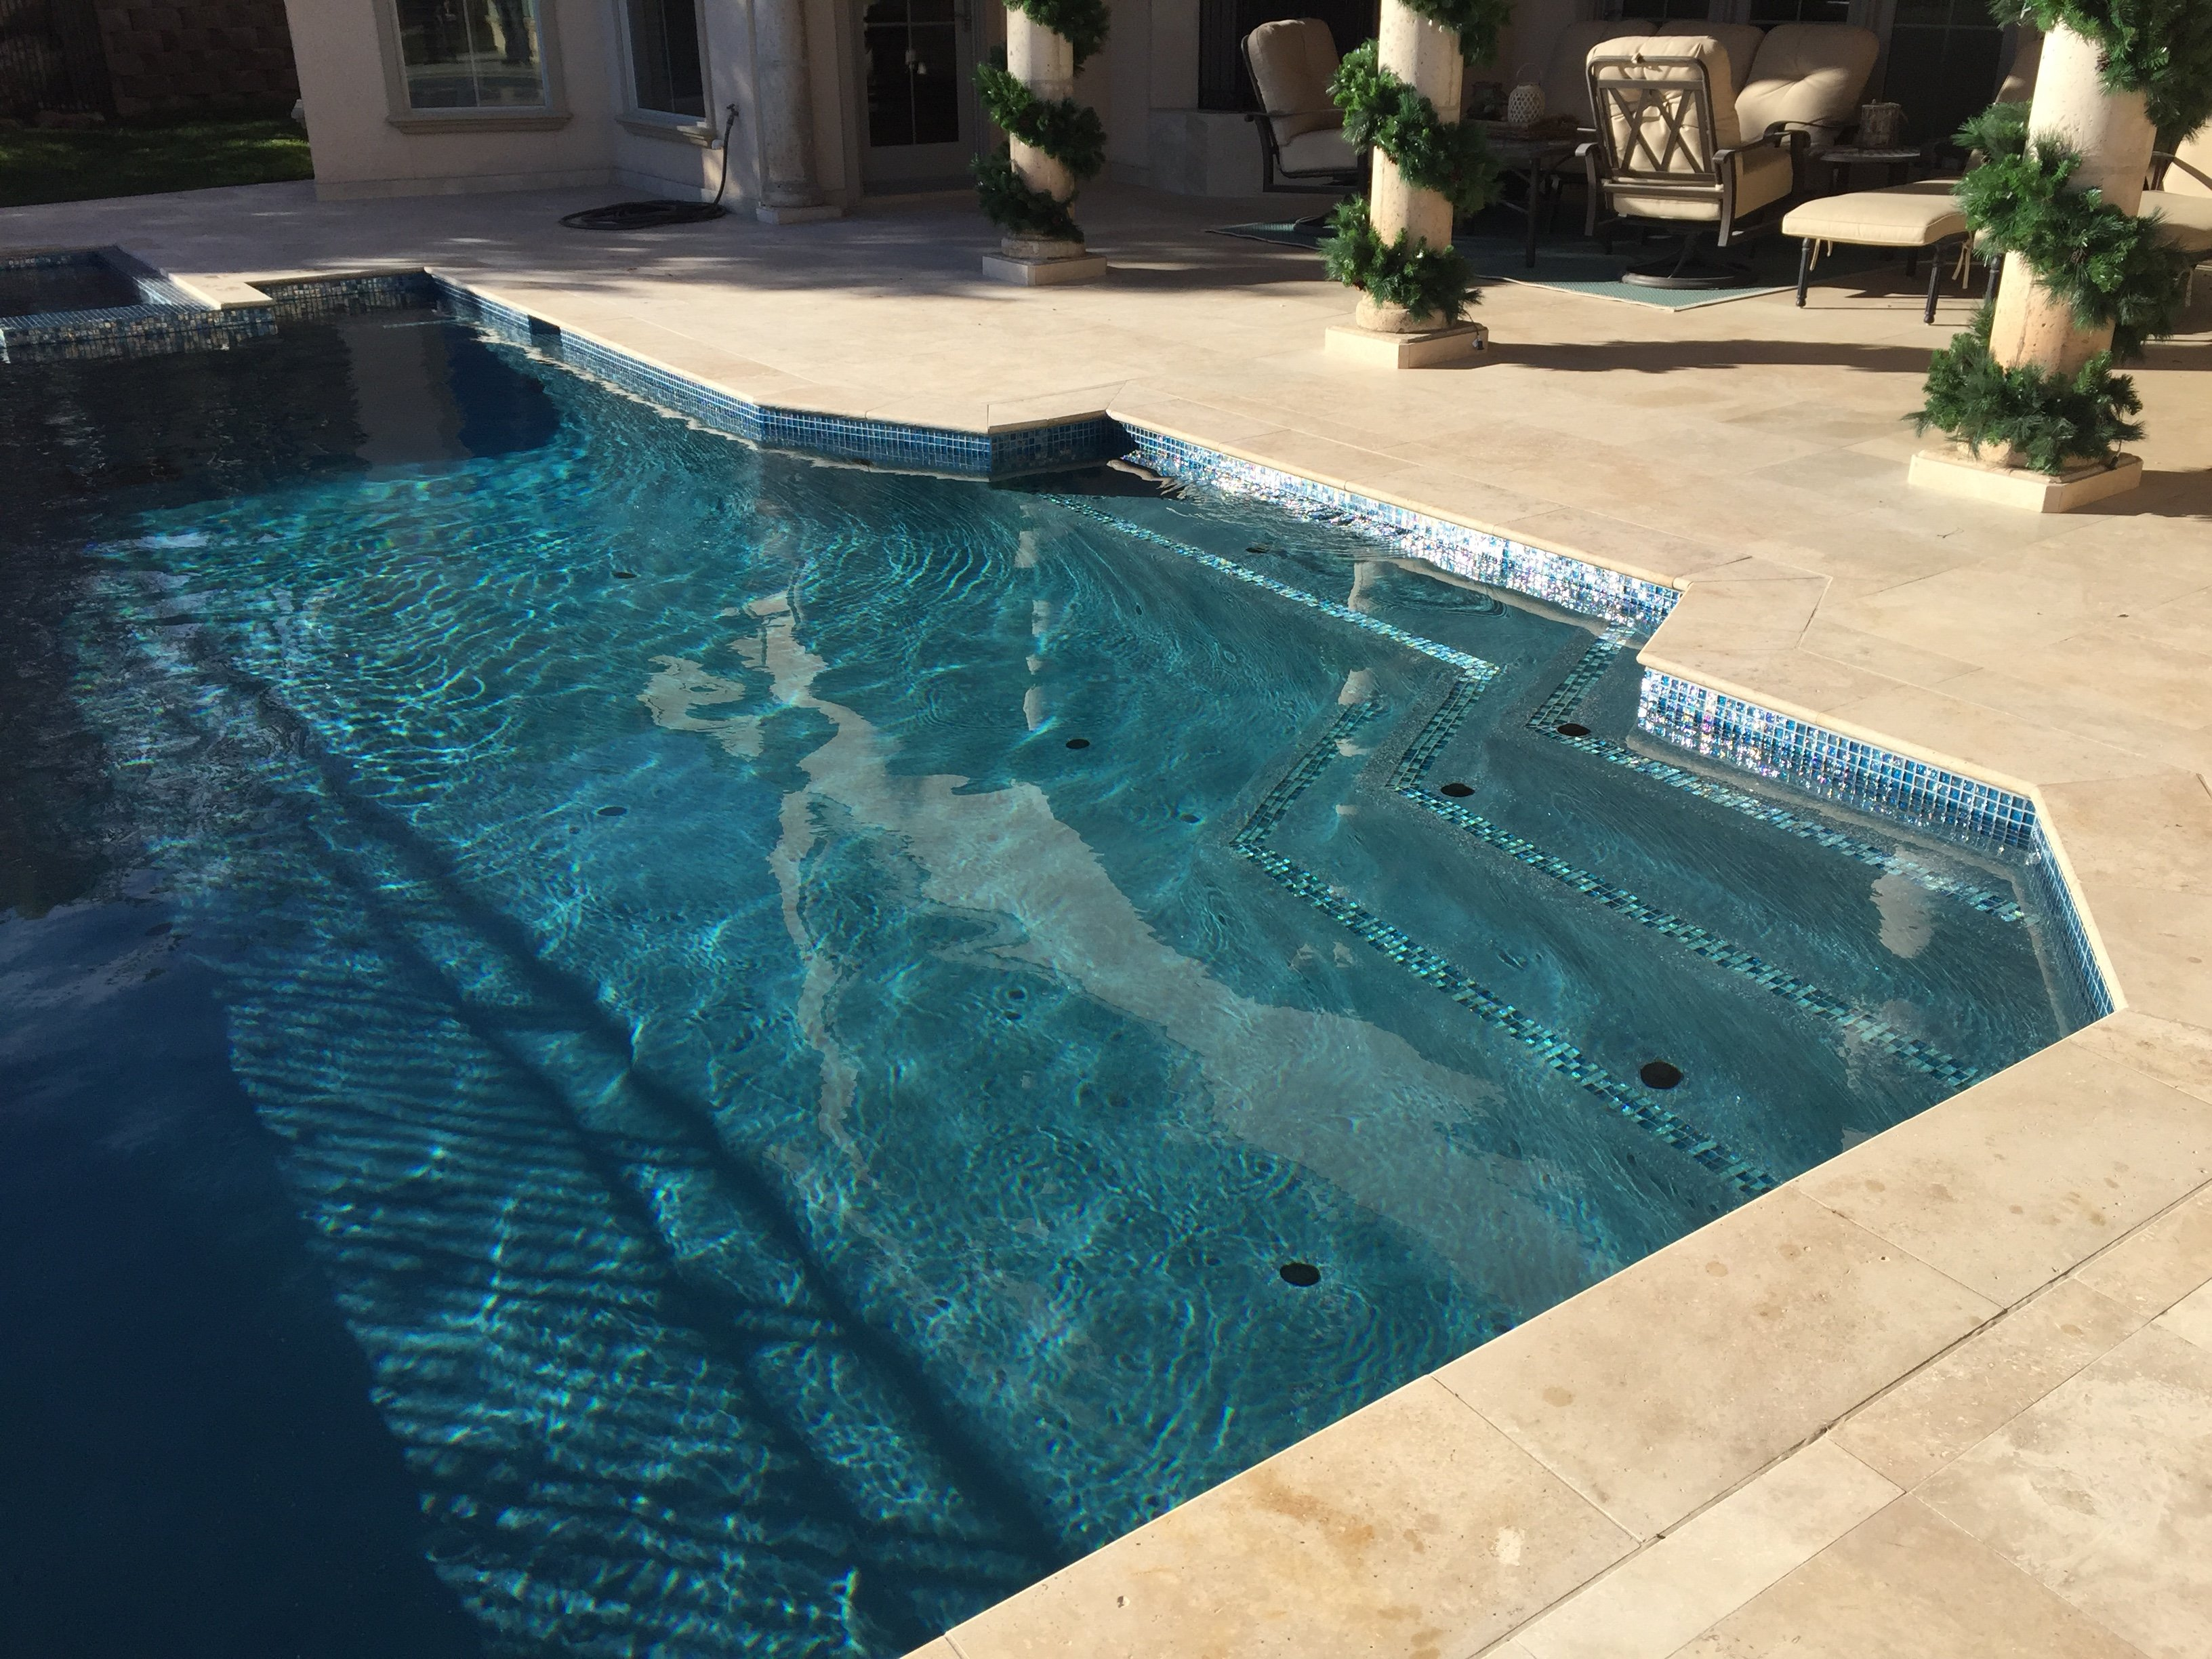 Out-Back Pool & Spa | Residential Pool Contractor in Lubbock, TX - Out-Back Pool & Spa